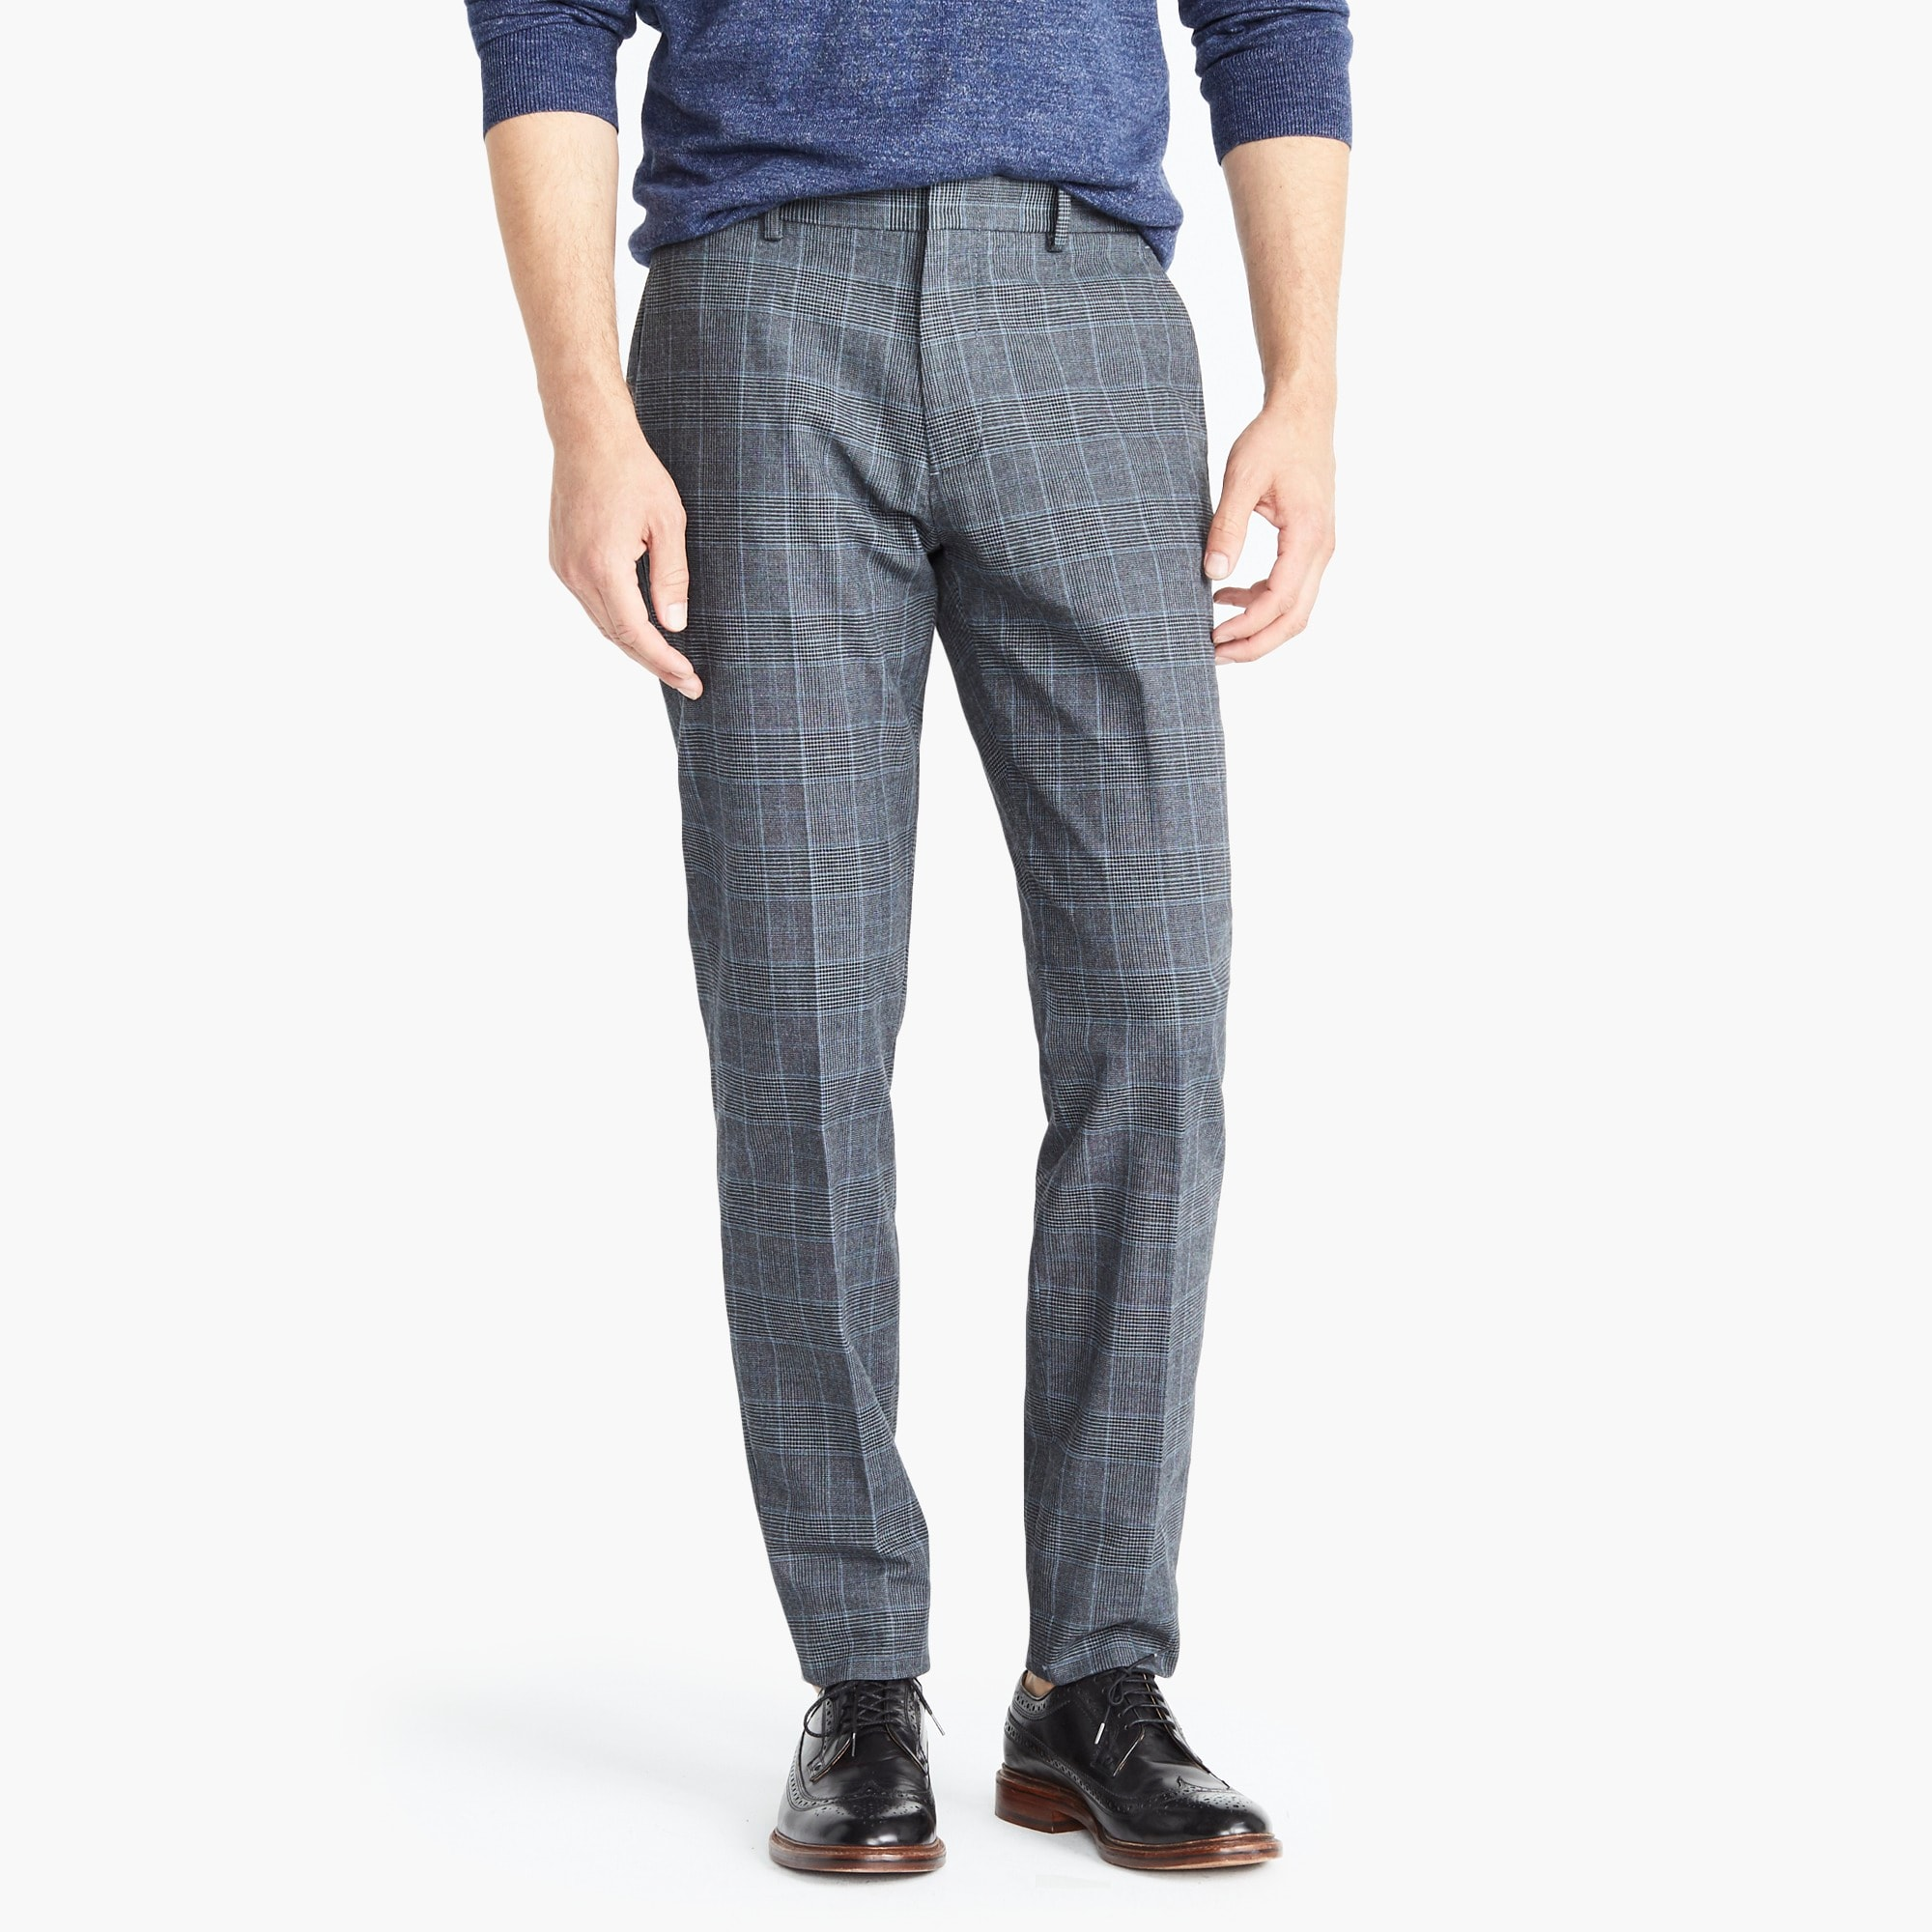 Bowery Slim-fit pant in glen plaid cotton